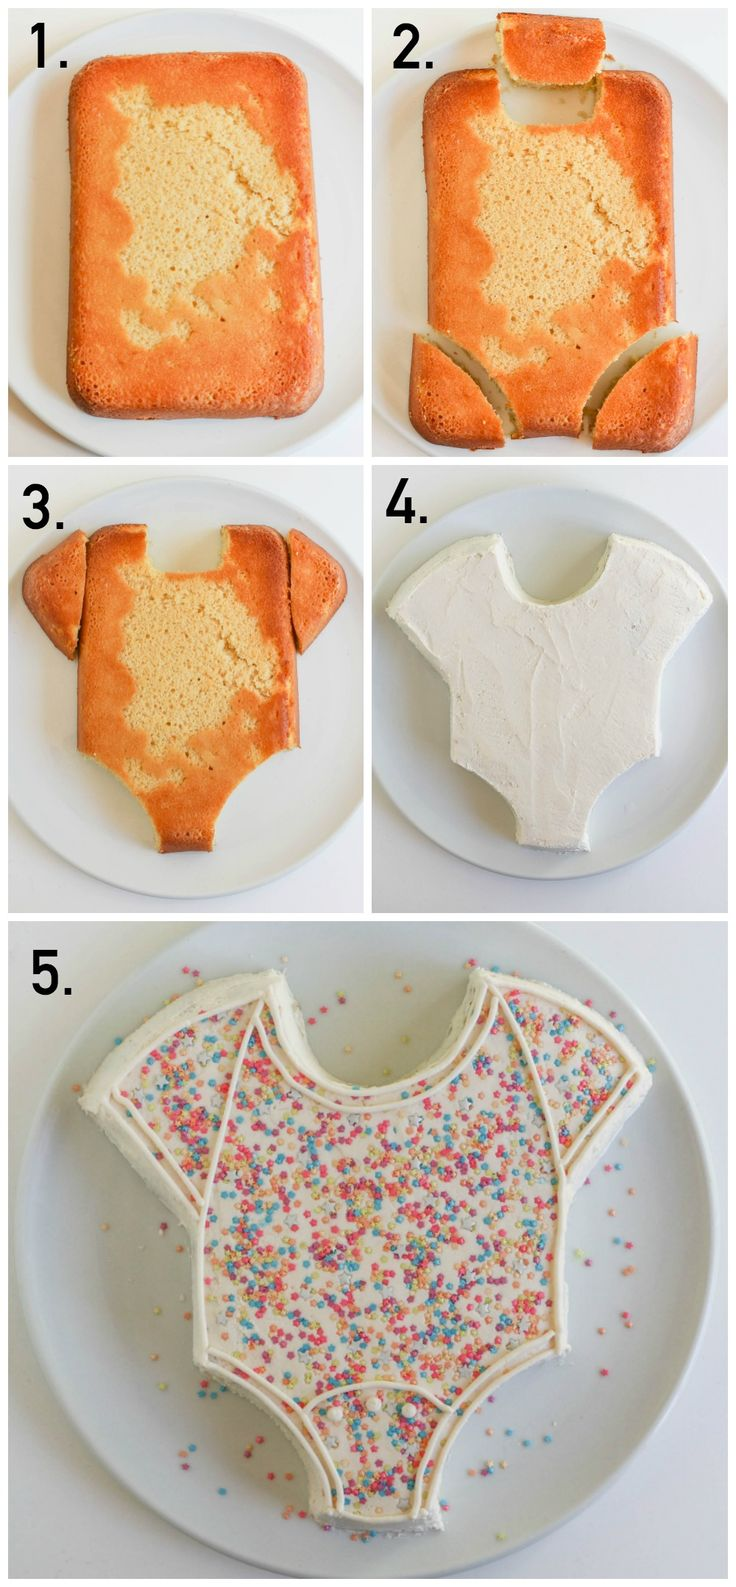 2243 Best Cake Decorating Ideas Images On Pinterest | Decorating Ideas,  Decorating Tips And Desserts